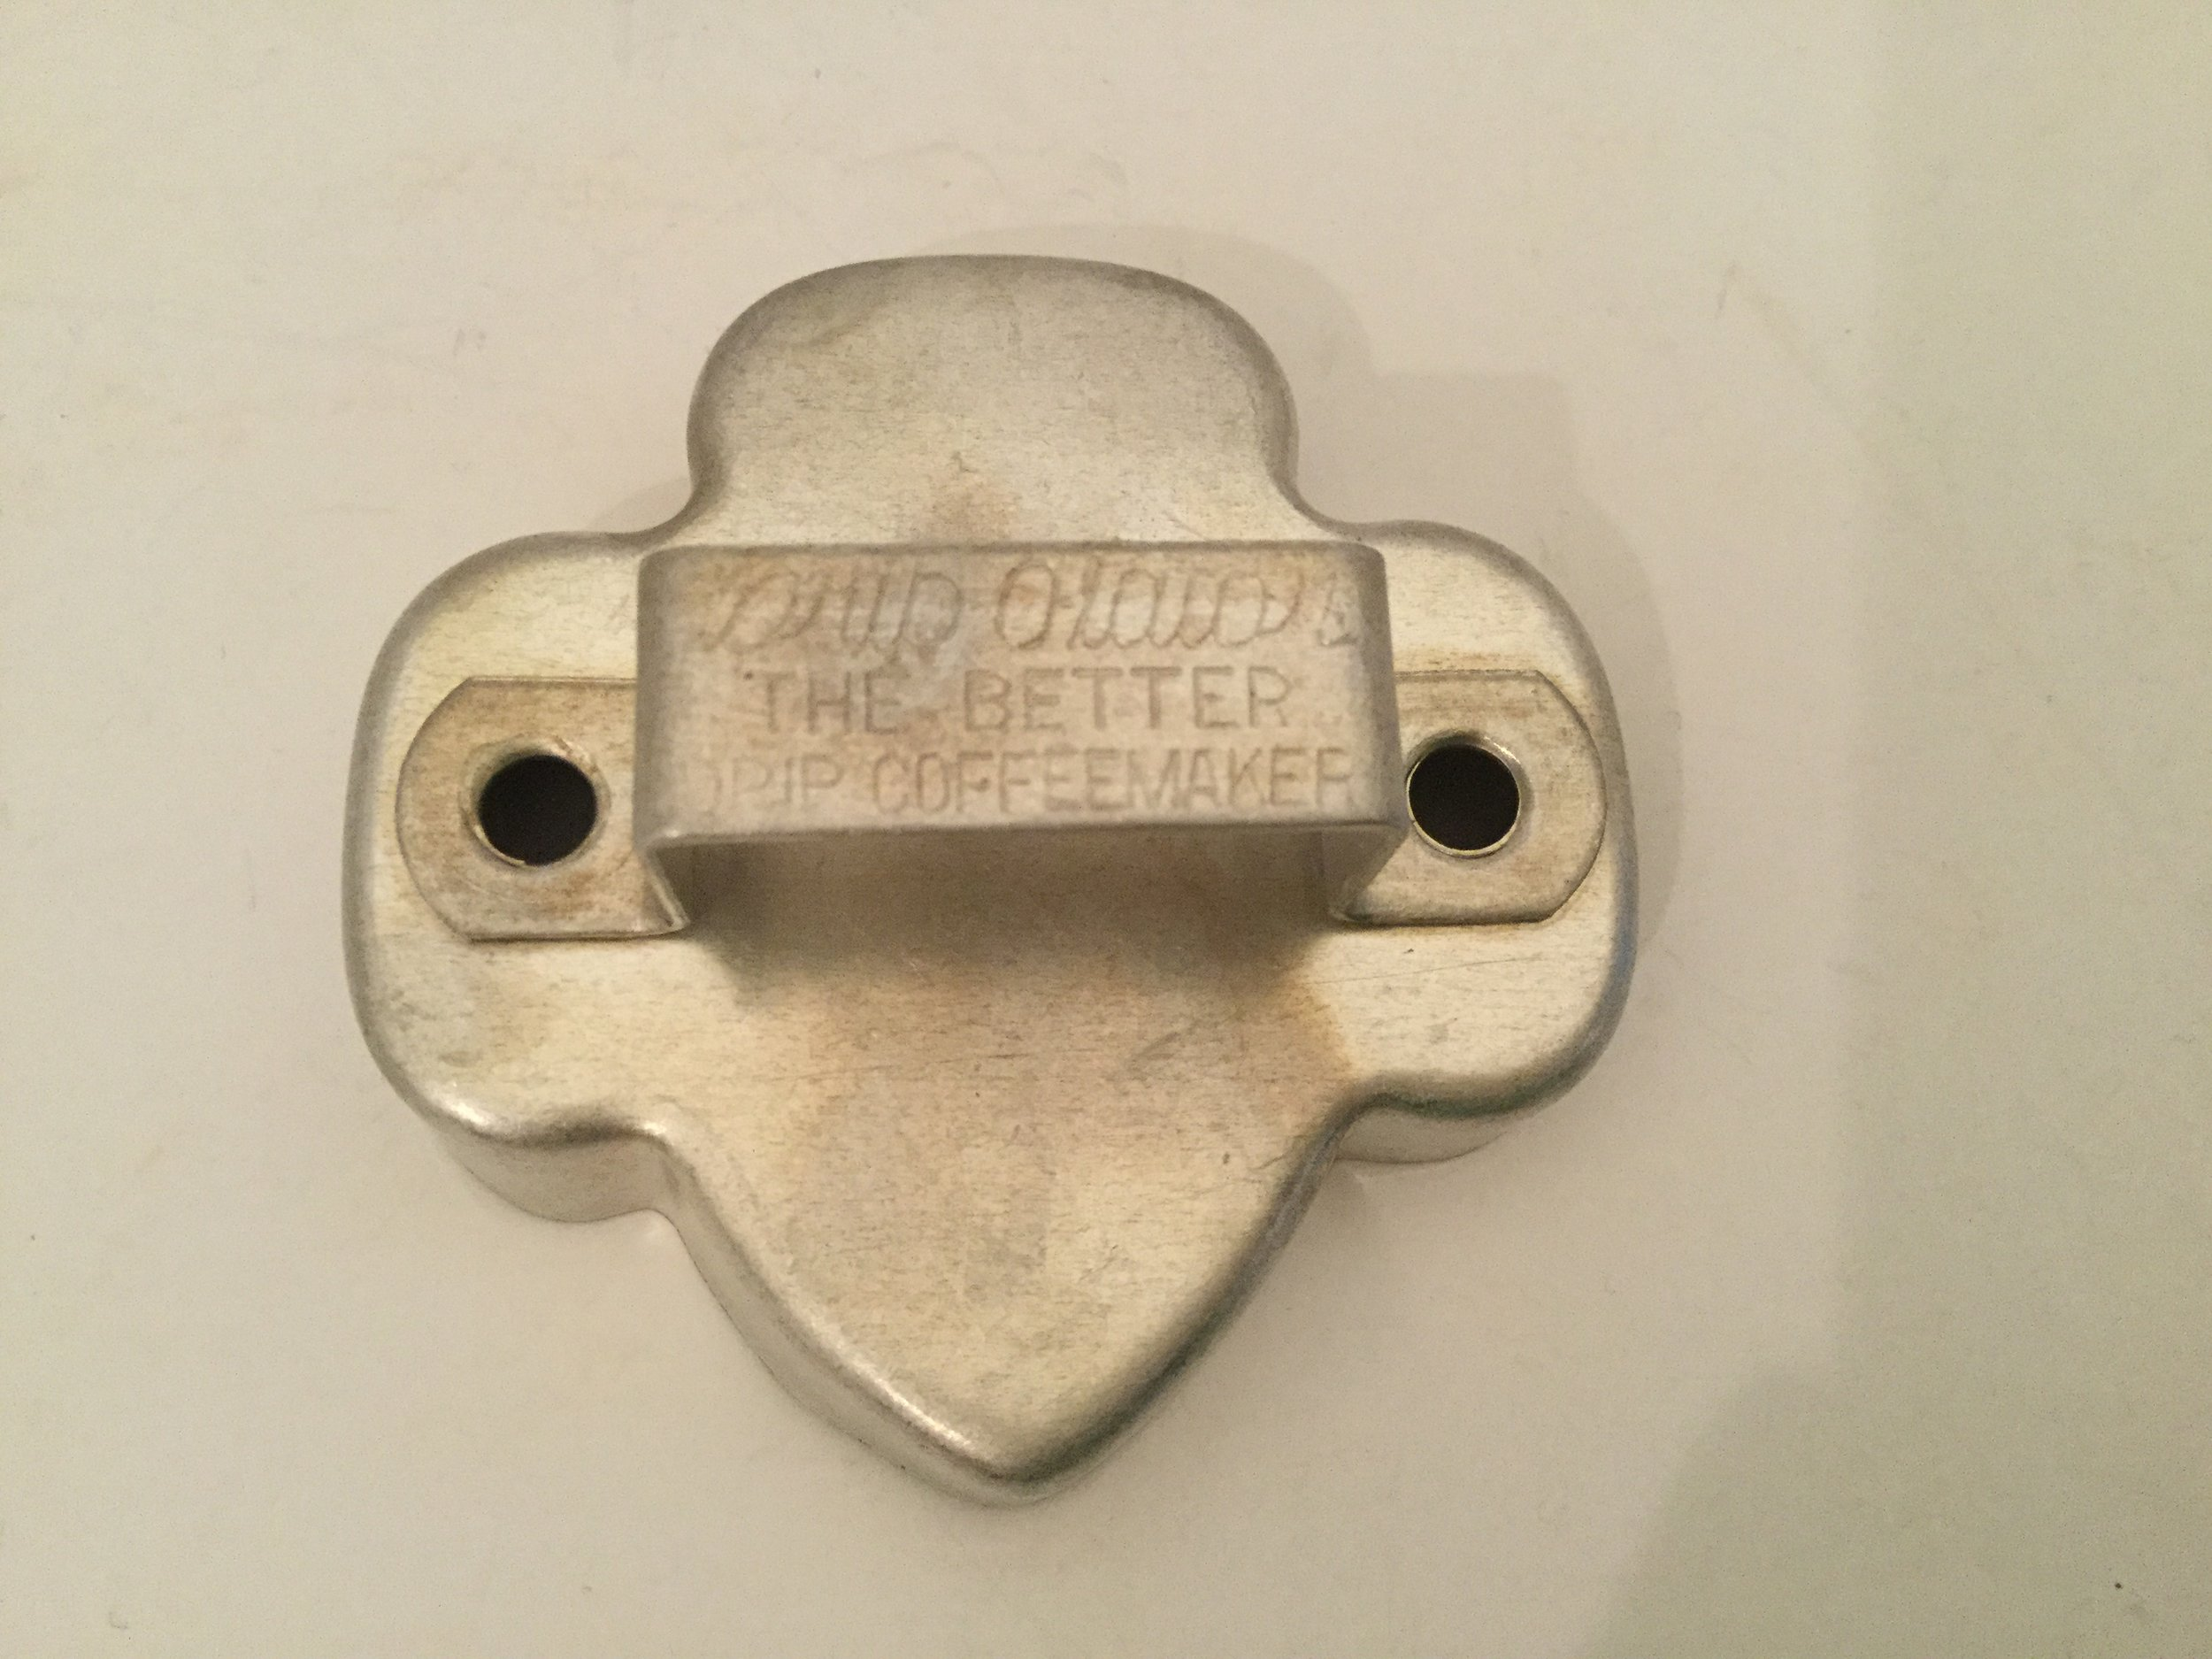 My Girl Scout cookie cutter ... 1953 or 1954